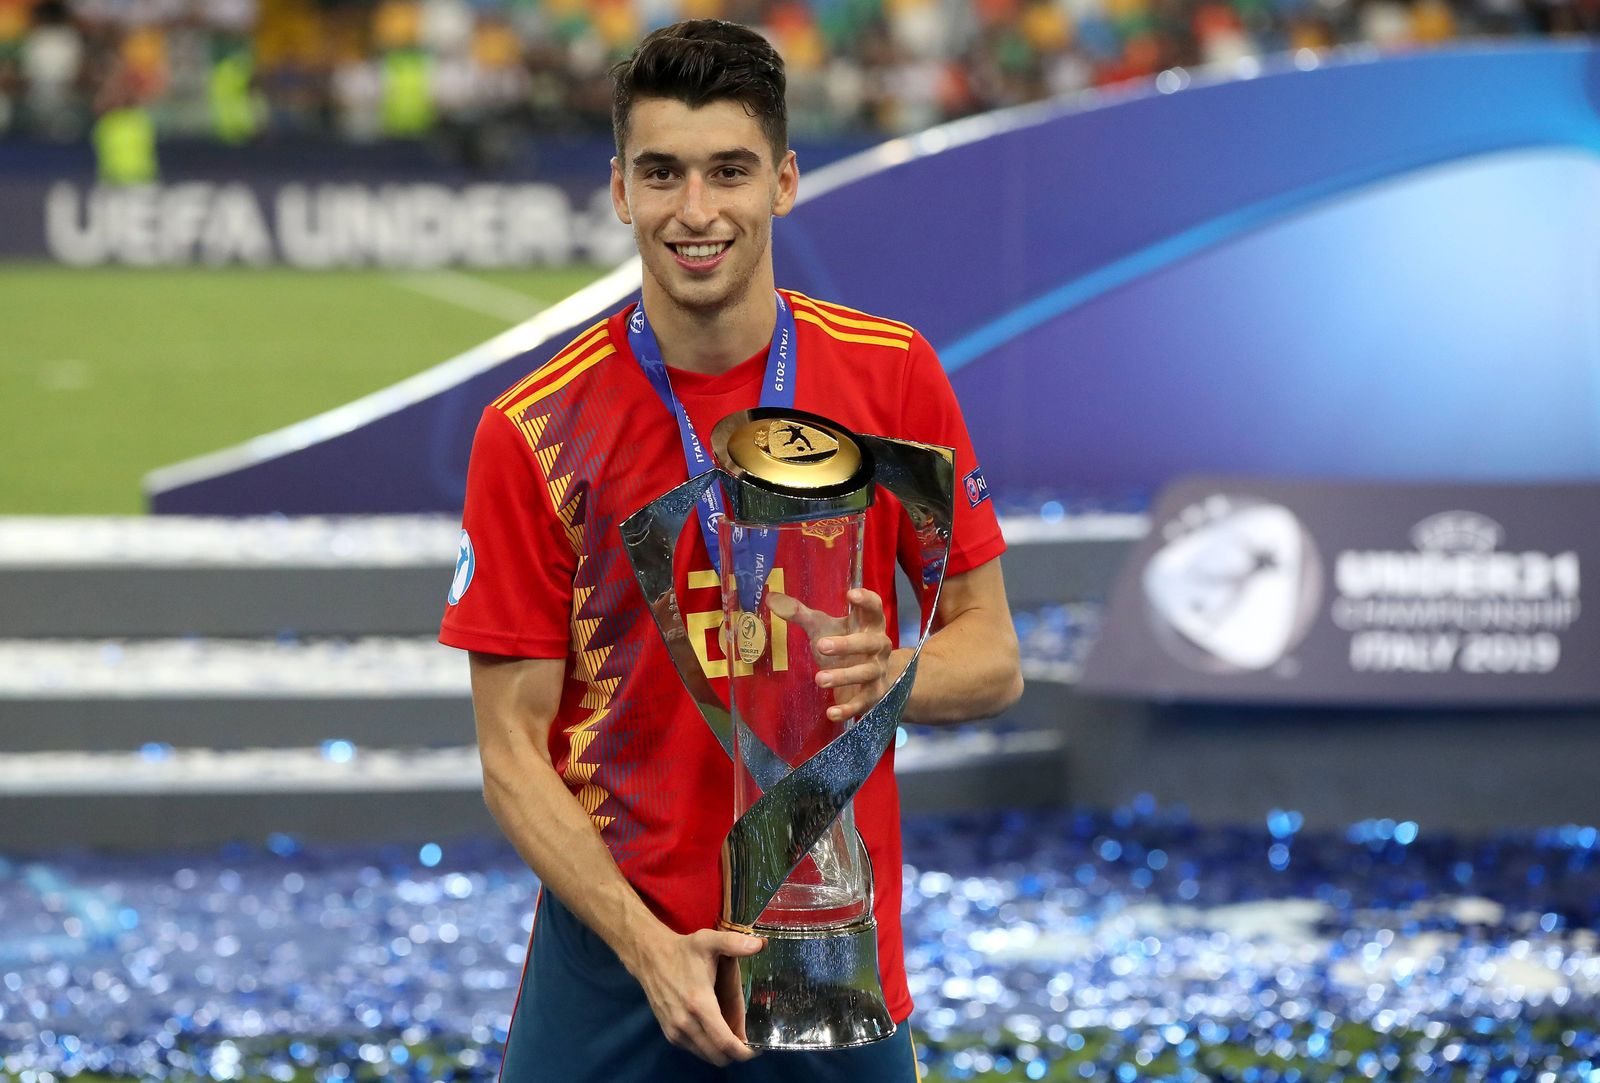 Spain U21, U 21 v Germany U21 - UEFA European Under-21 Championship - Final - Stadio Friuli Spain U21 s Marc Roca celeb